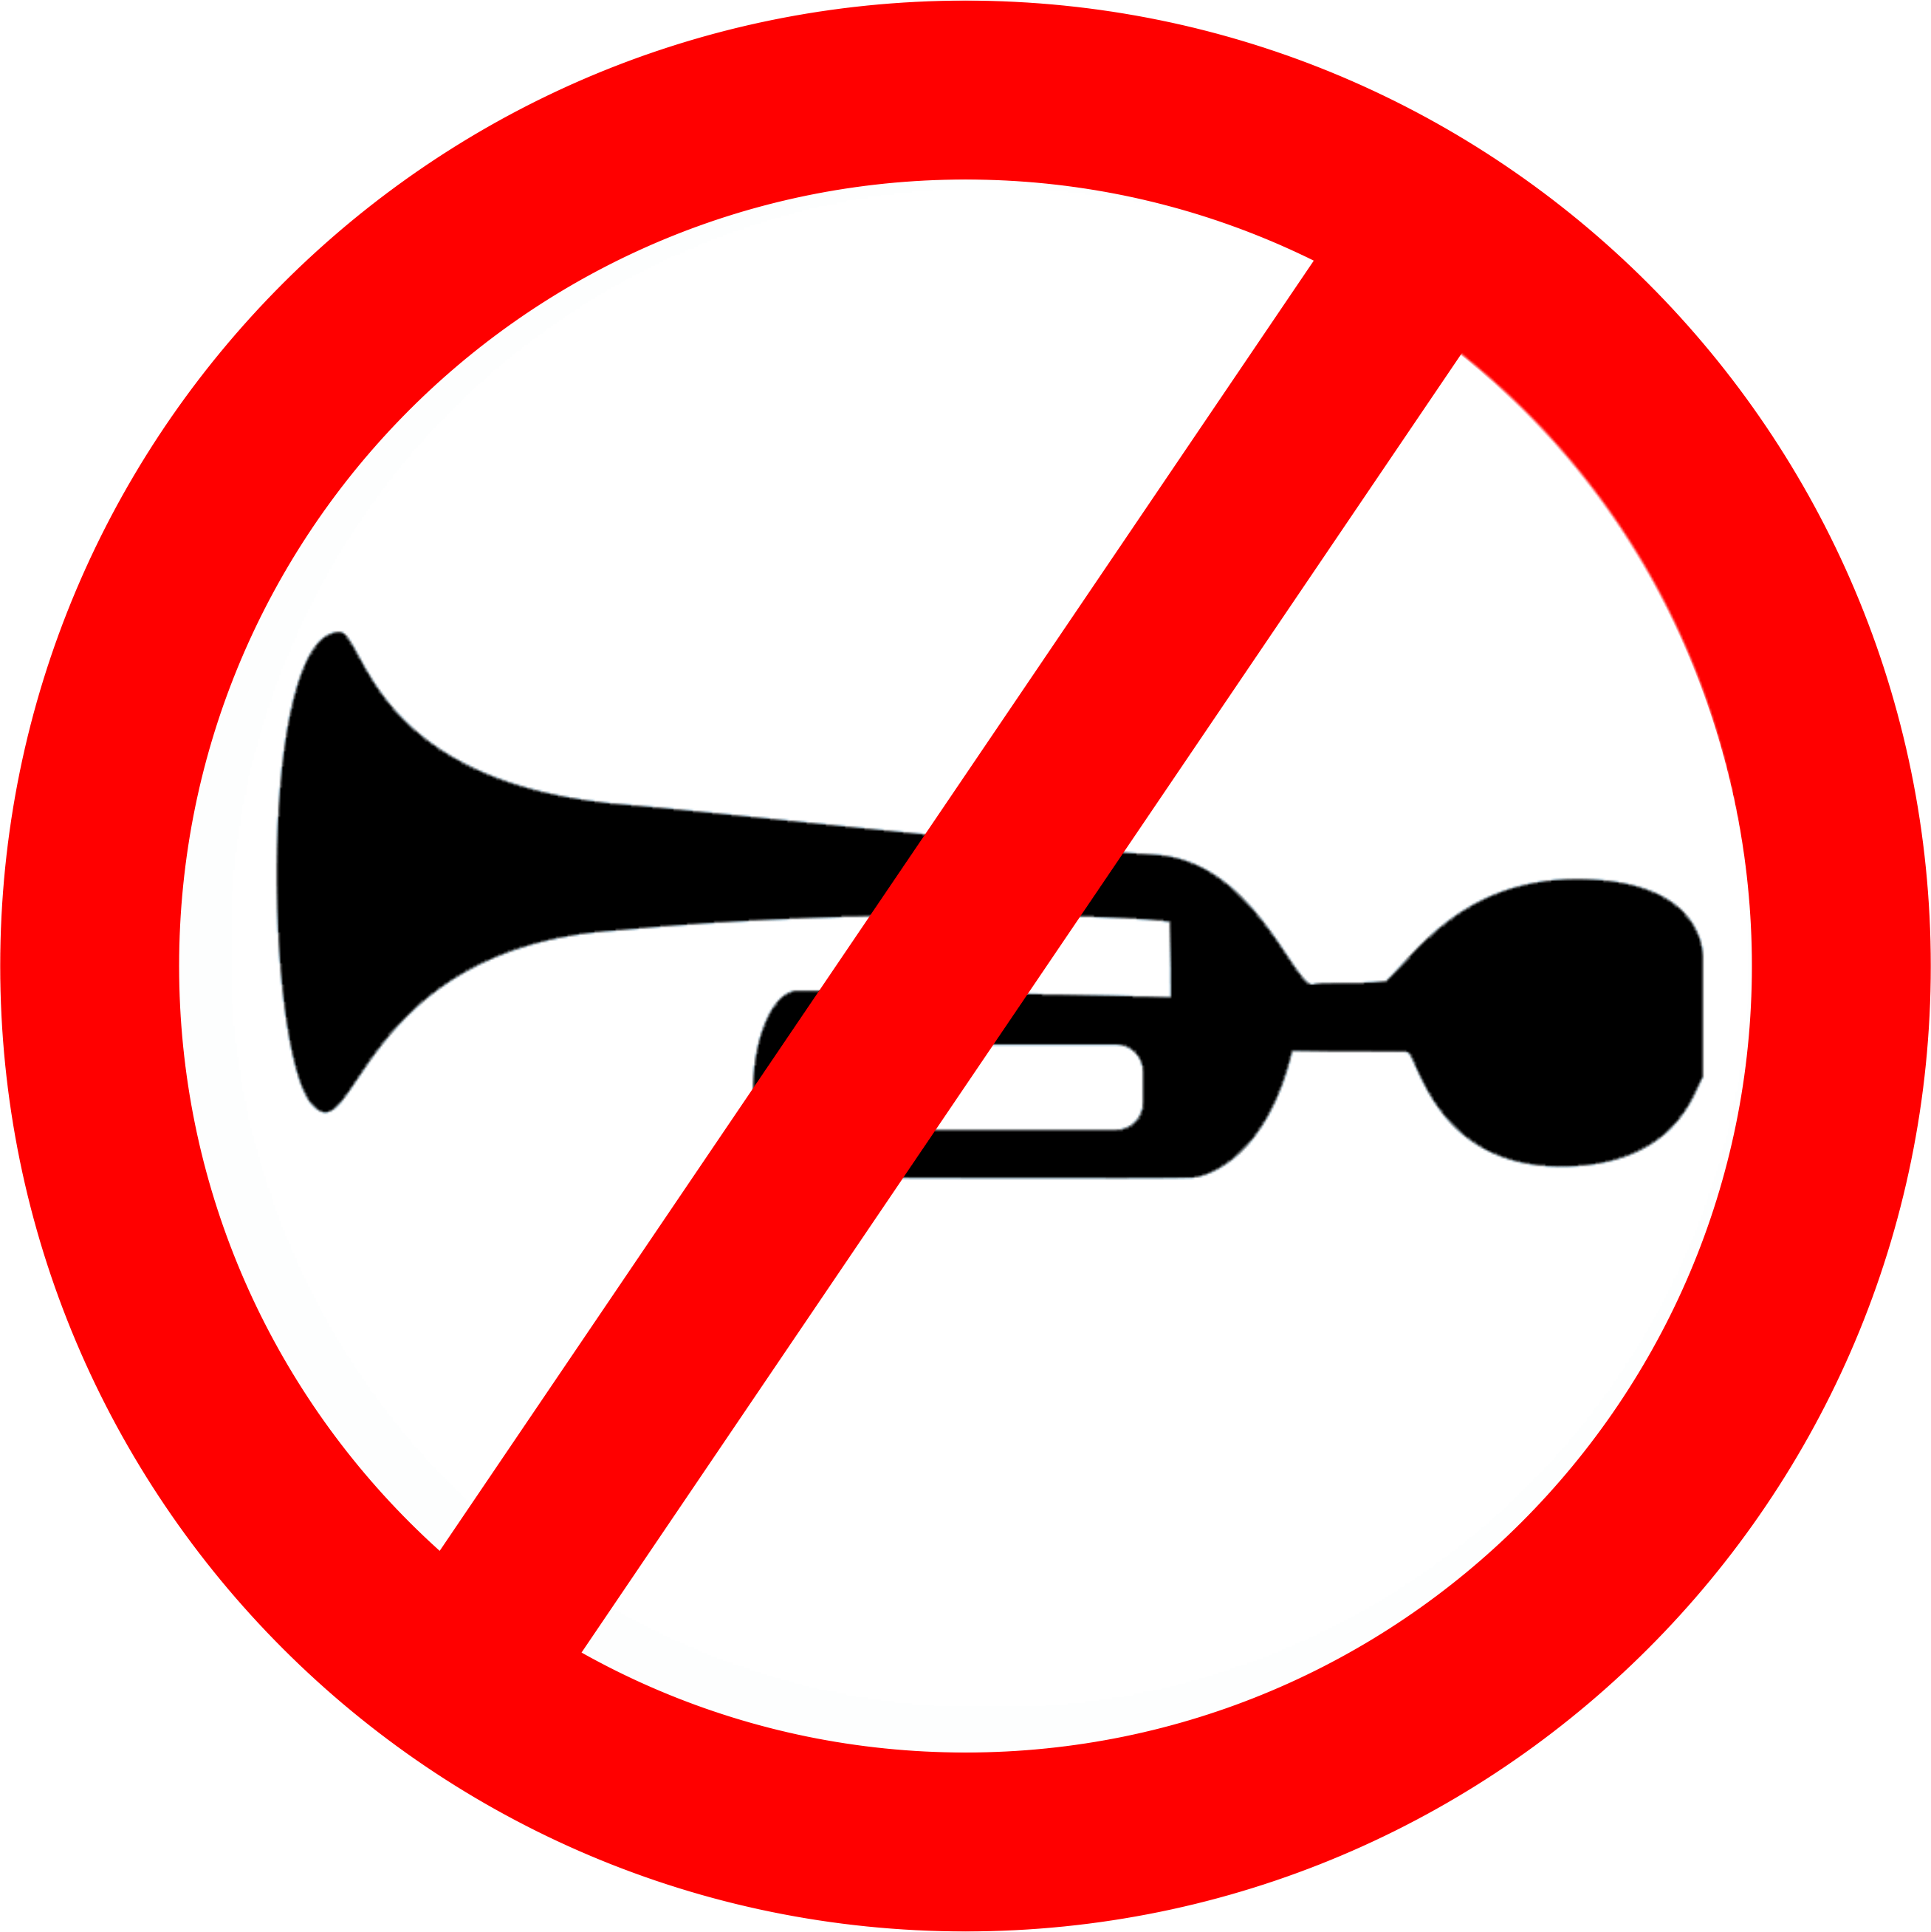 Trumpet Blowing The Forbidden Sign Png